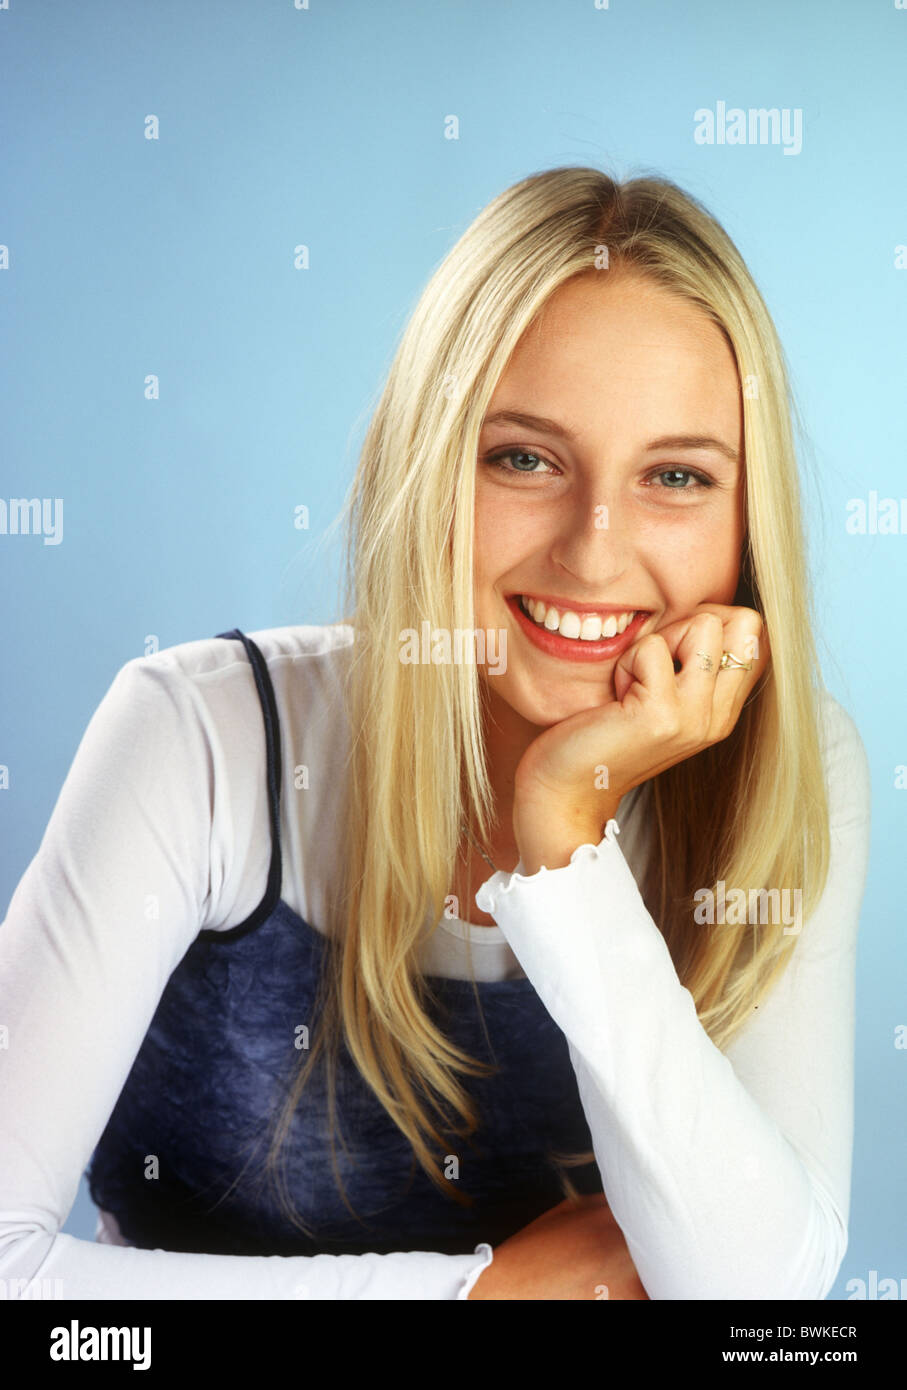 Portrait young woman look at camera - Stock Image